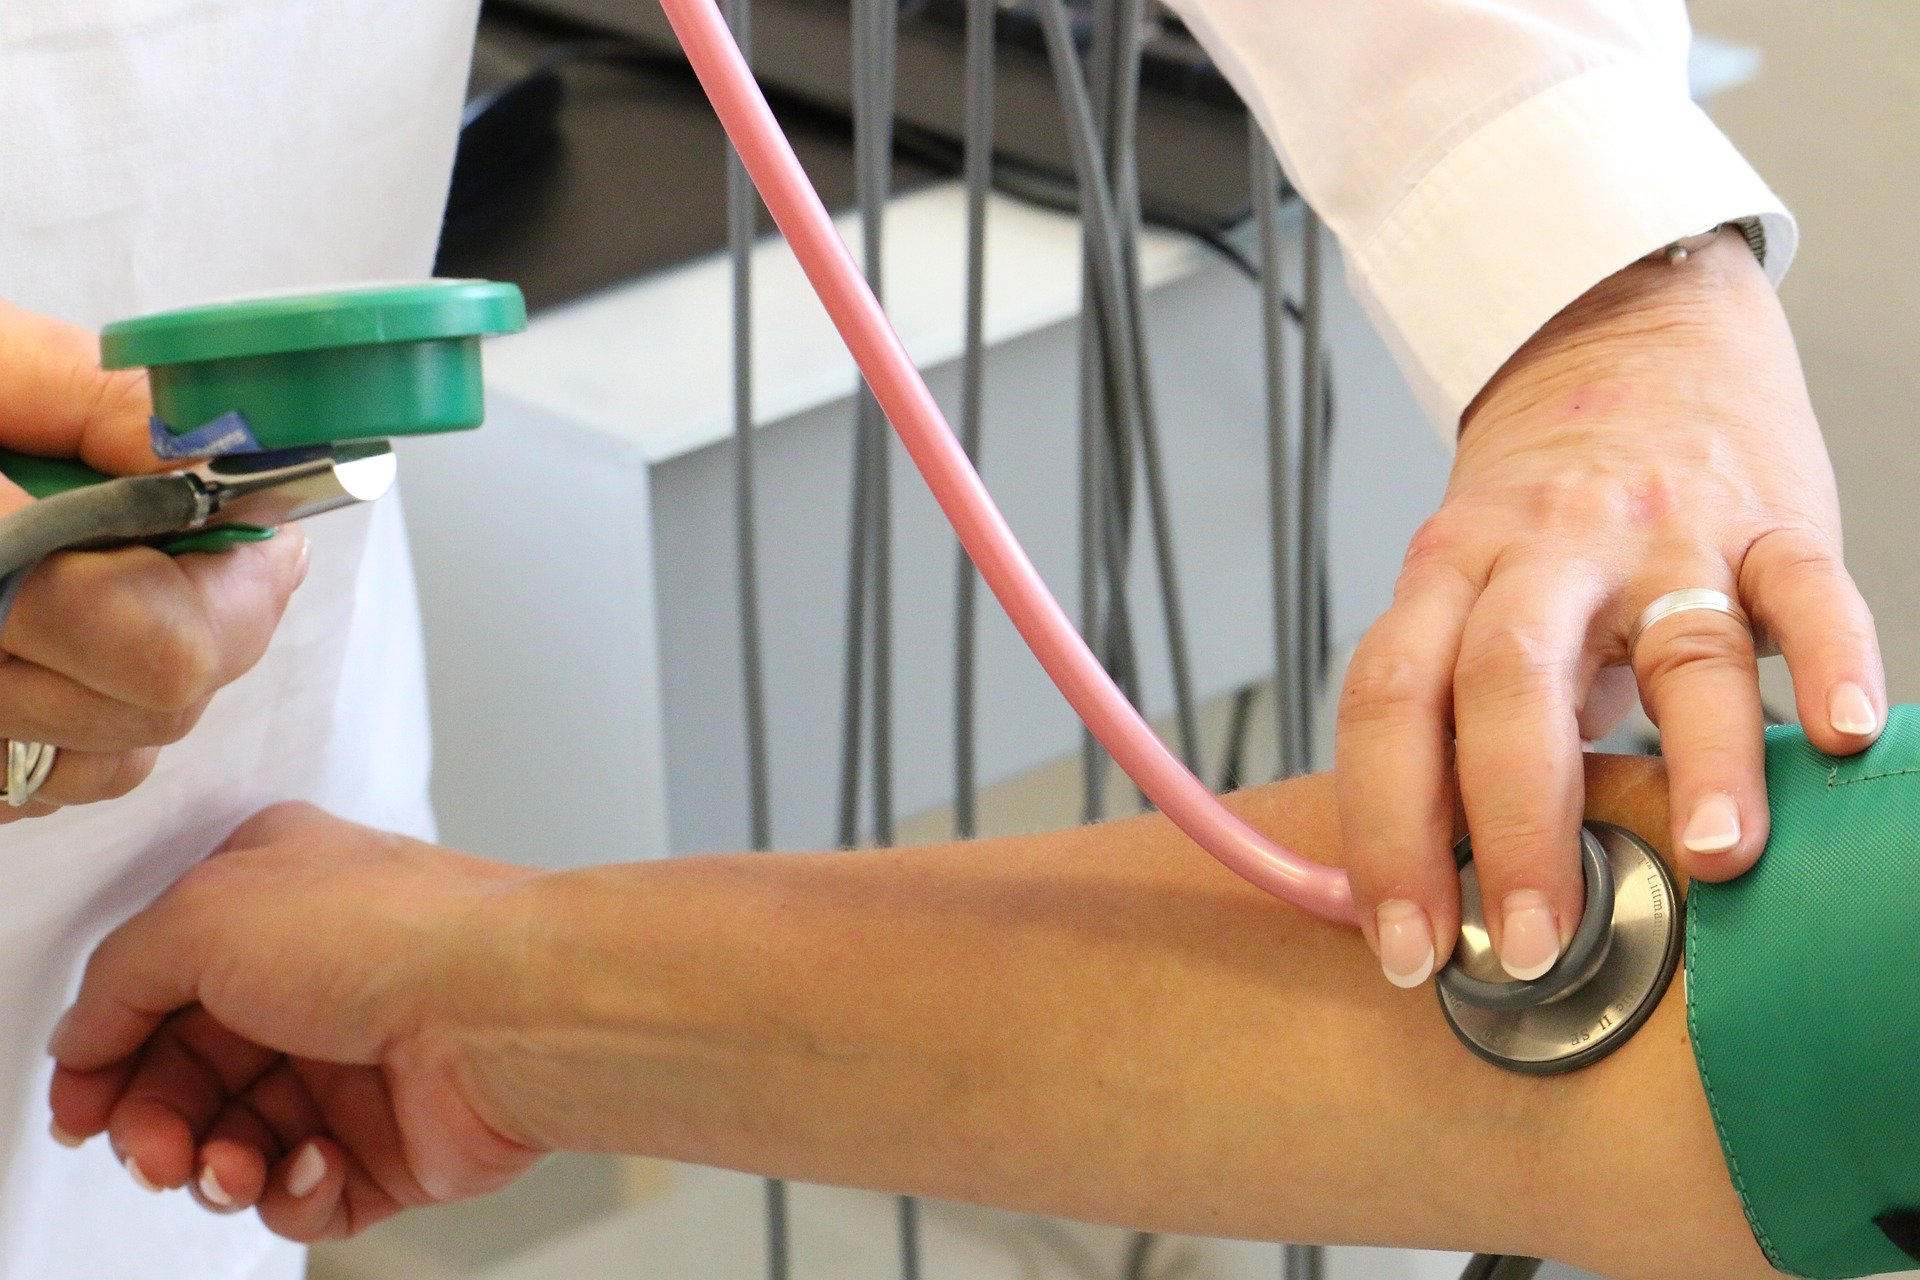 Intensive Care at Home: A win-win for patients as well as as the healthcare industry